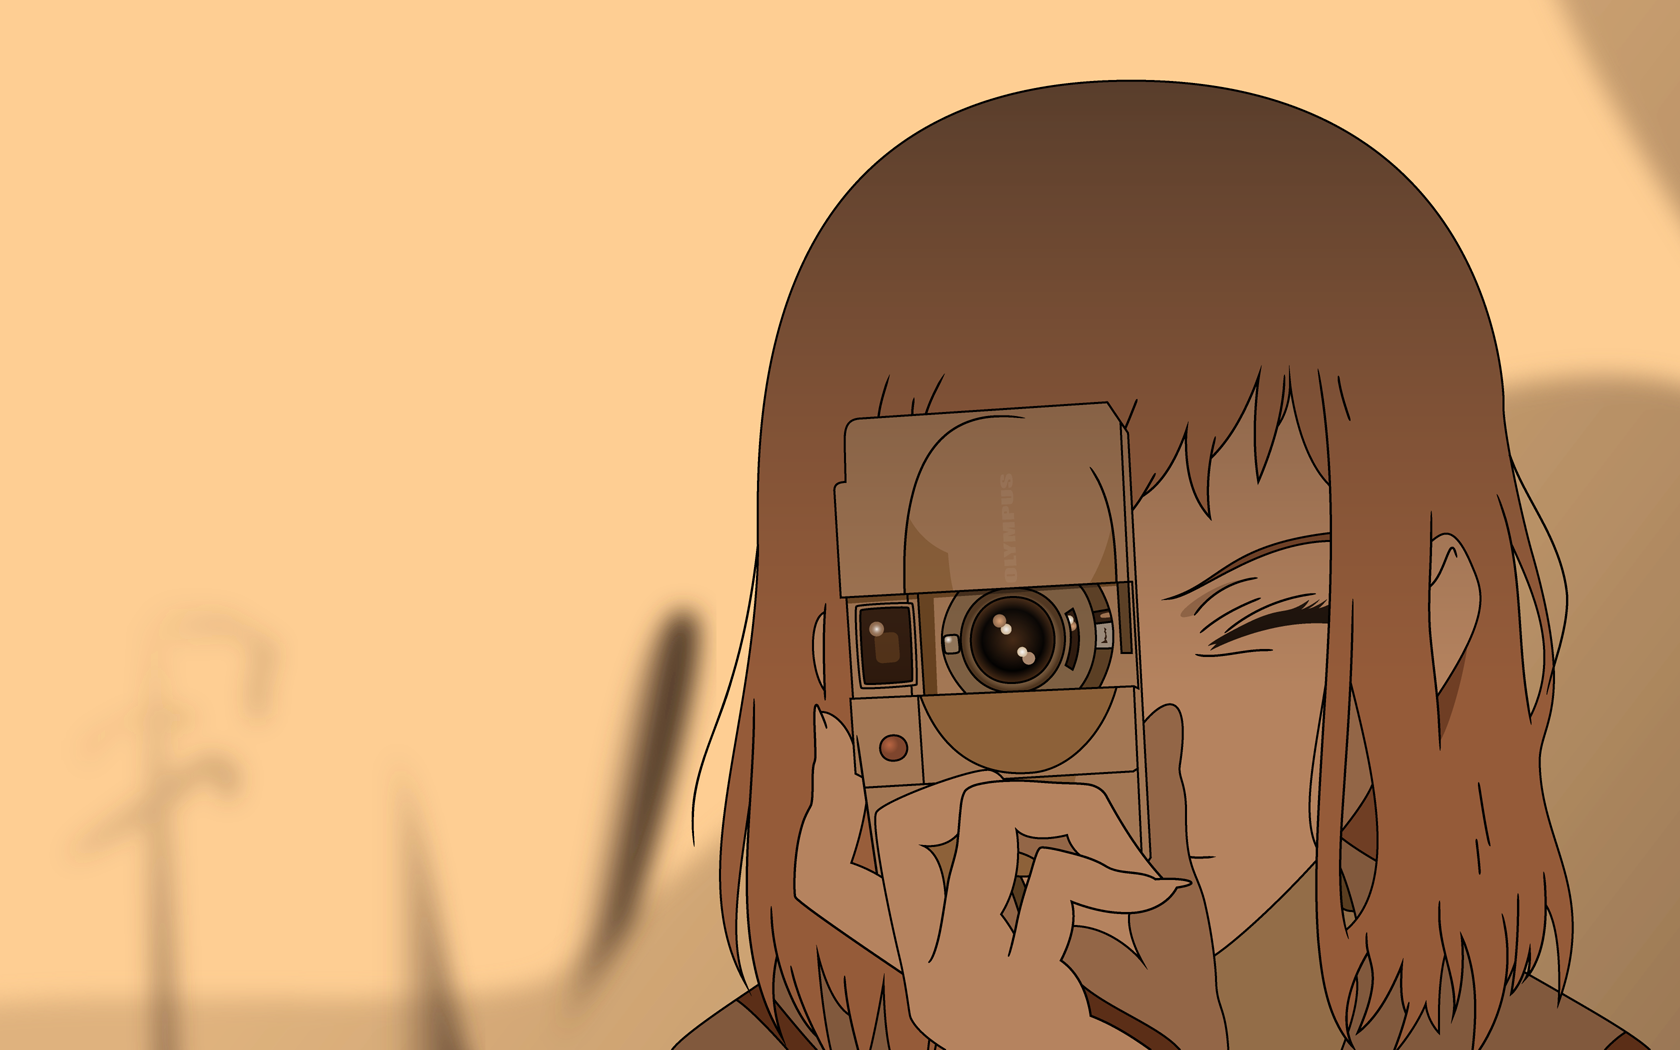 An anime character looks through the viewfinder of a camera.